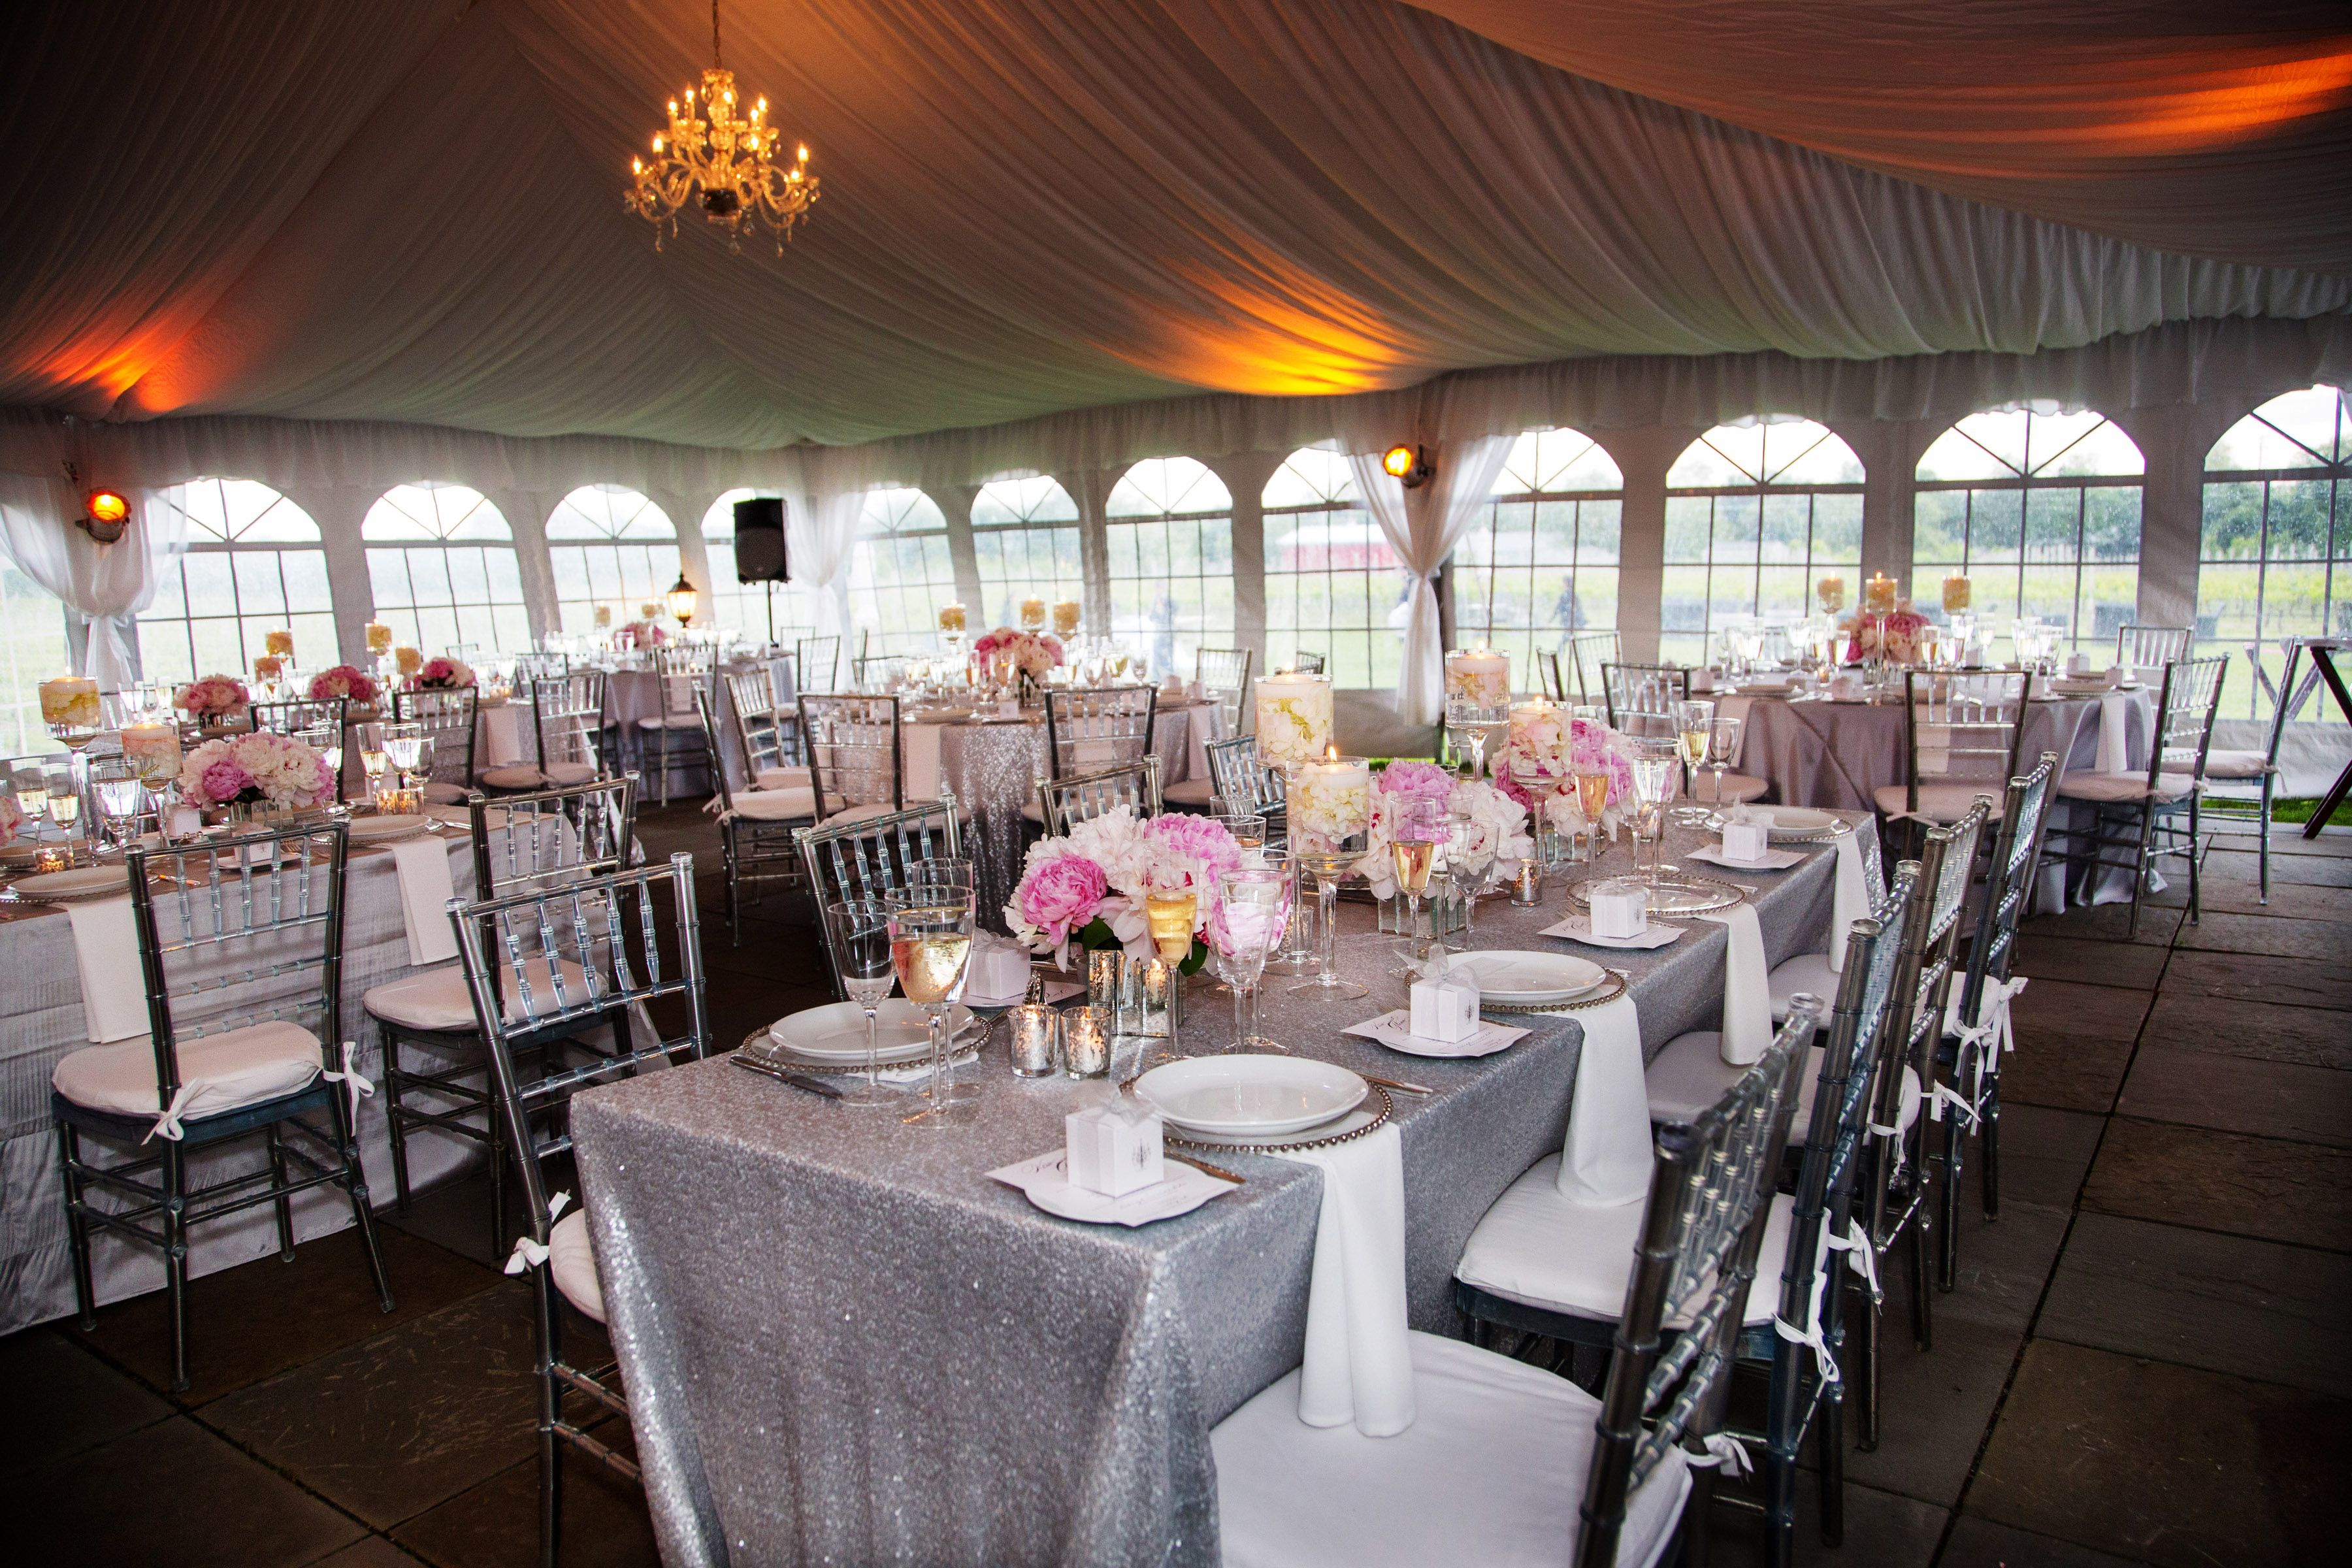 Sparkly Tent Wedding At Sparkling Pointe Vineyards North Fork Of Long Island